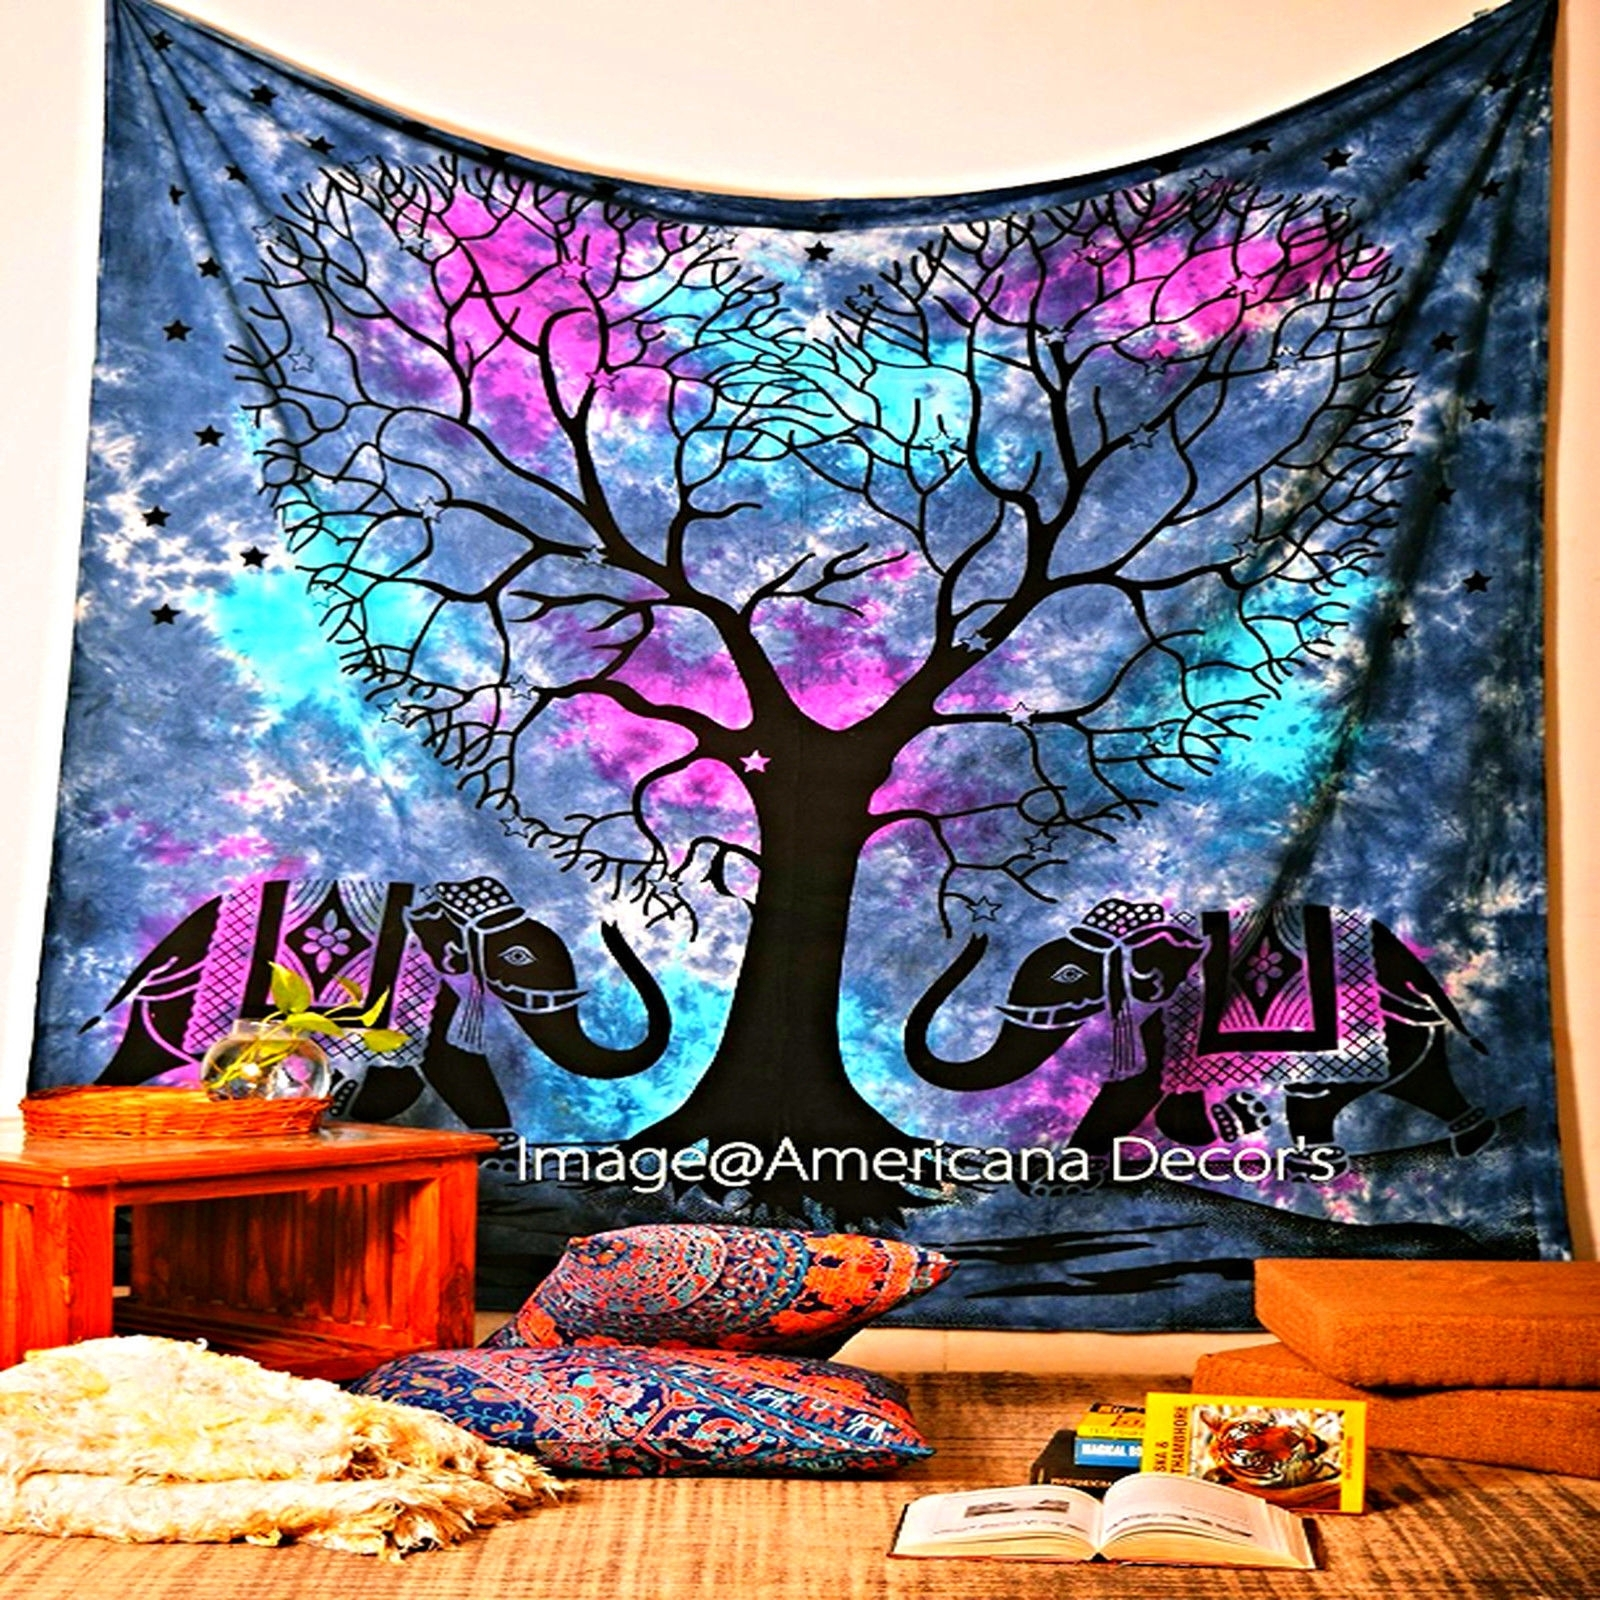 Bohemian Wall Art Tapestry Tree Elephant Indian Bedspread Blanket Throughout Recent Bohemian Wall Art (View 5 of 15)